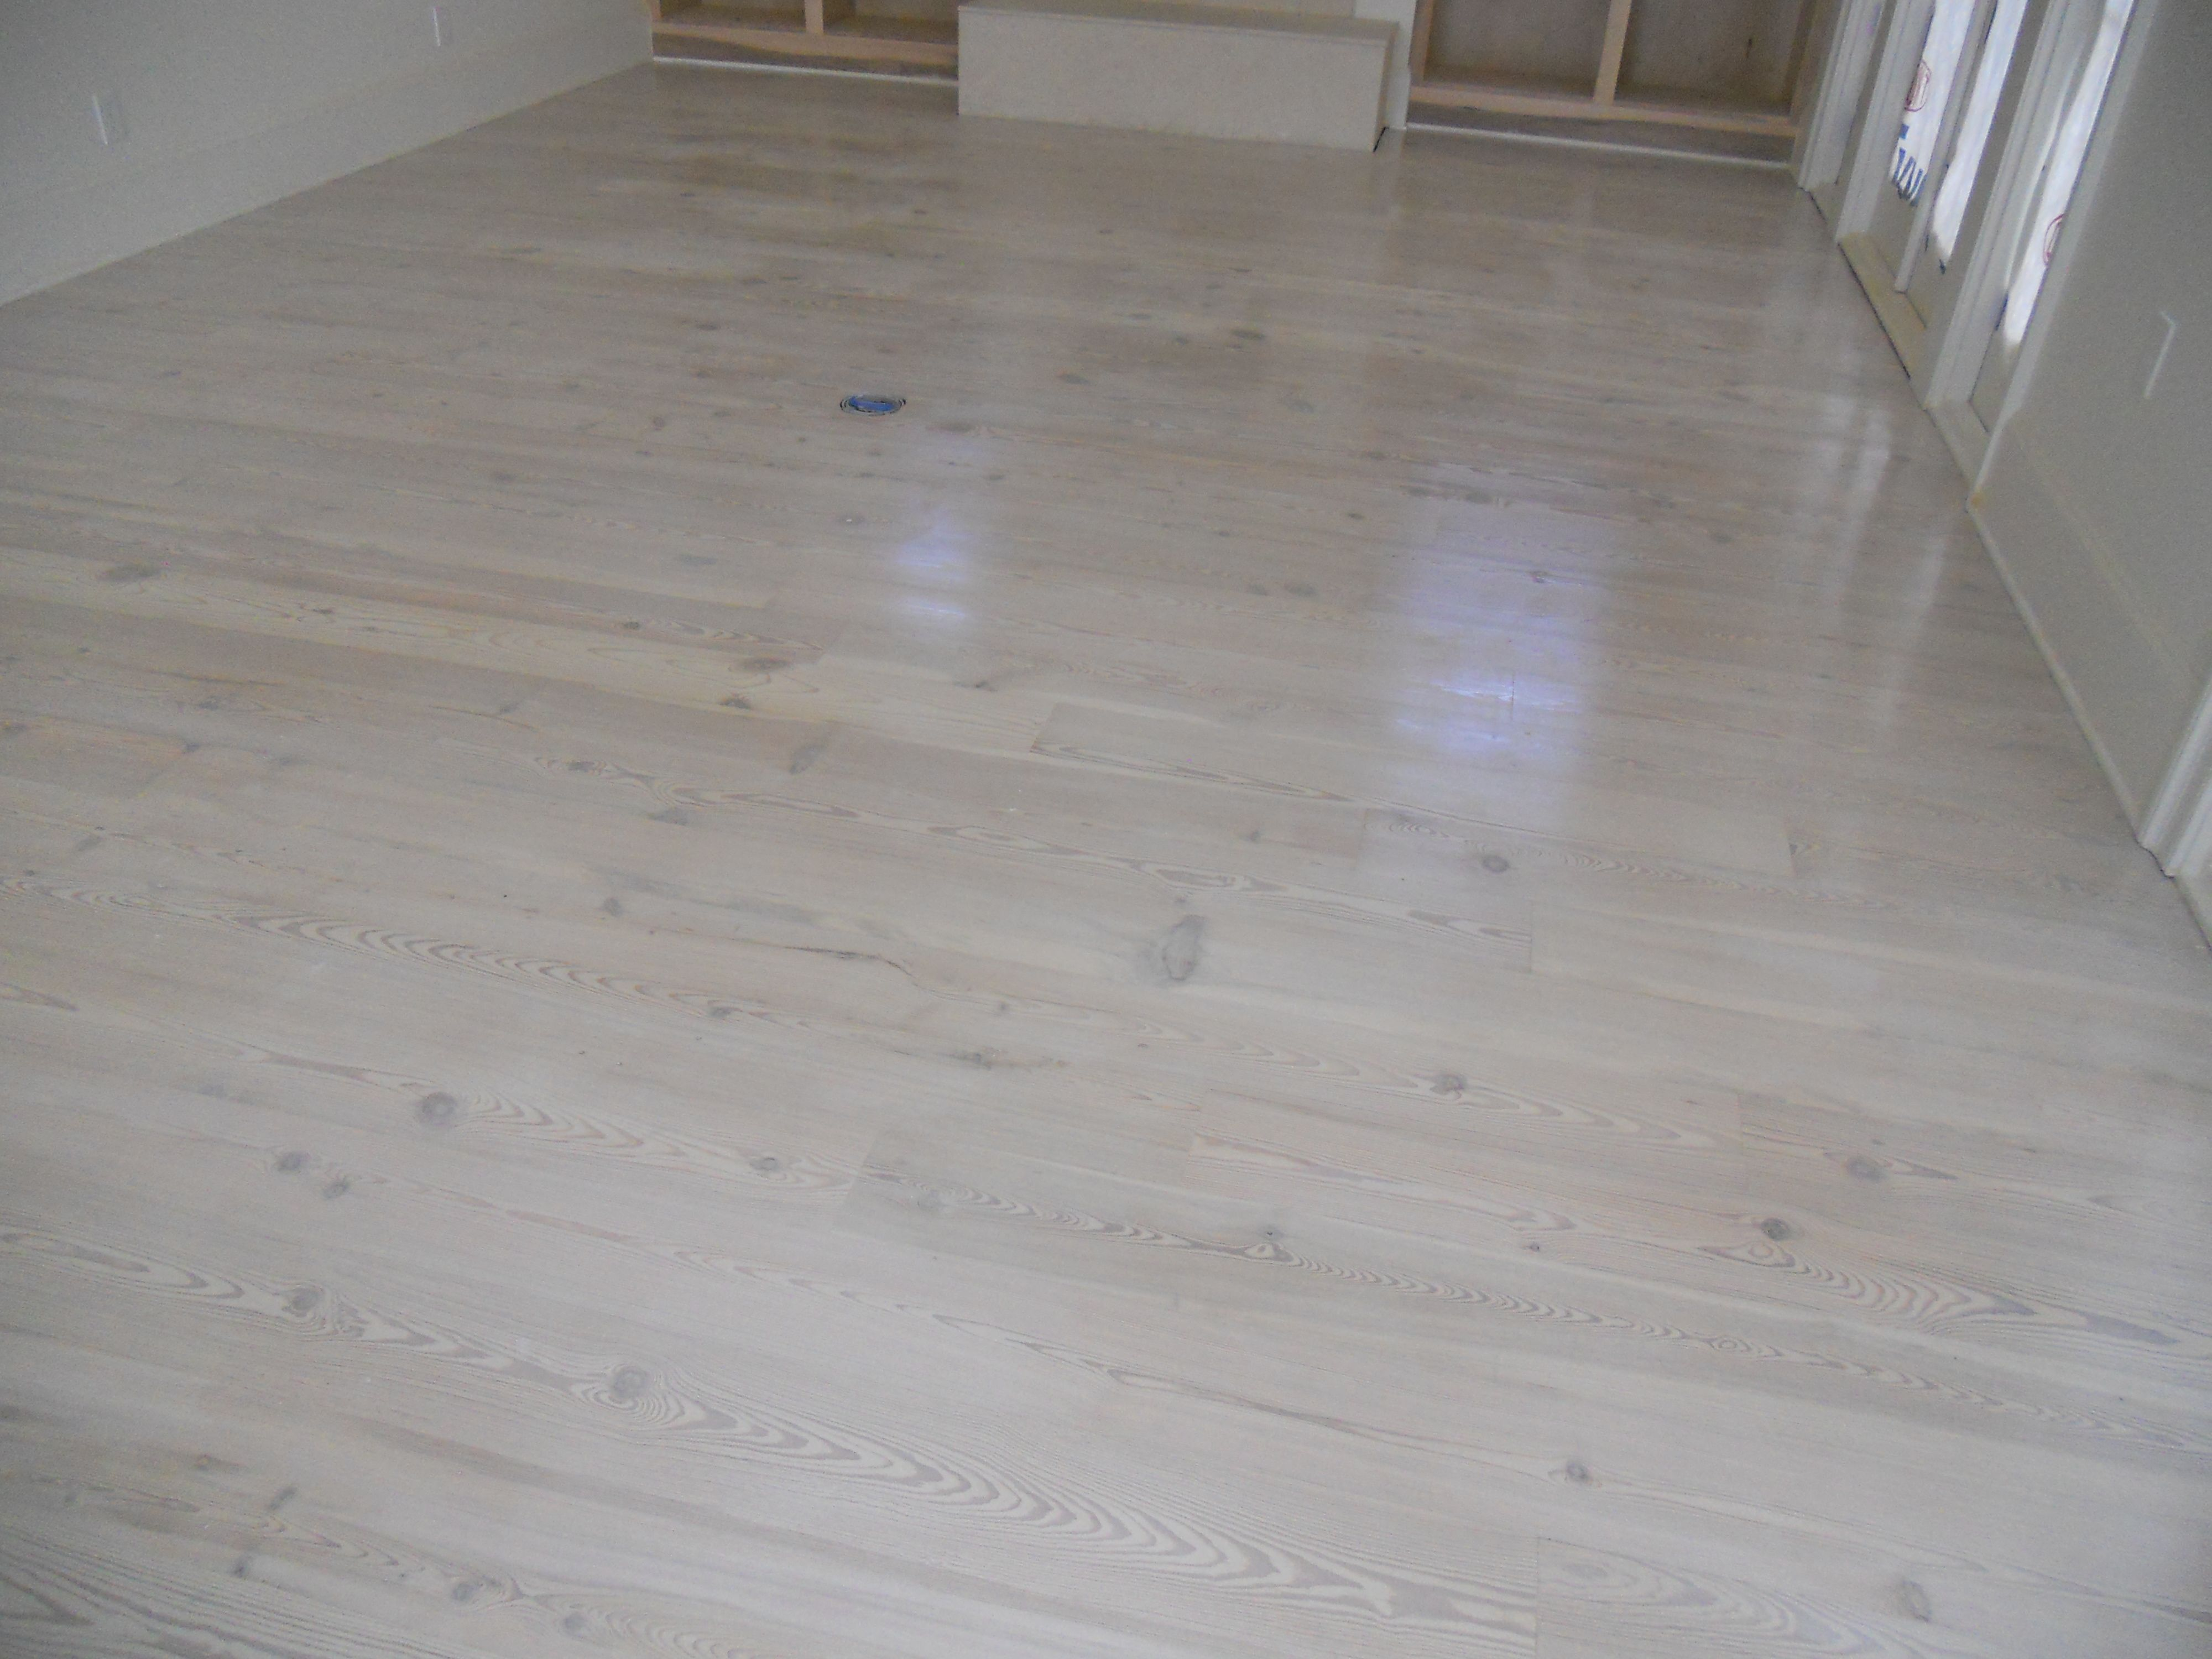 Flooring eclectic hardwood flooring boston by paris ceramics - Pickled Floors Pictures Google Search